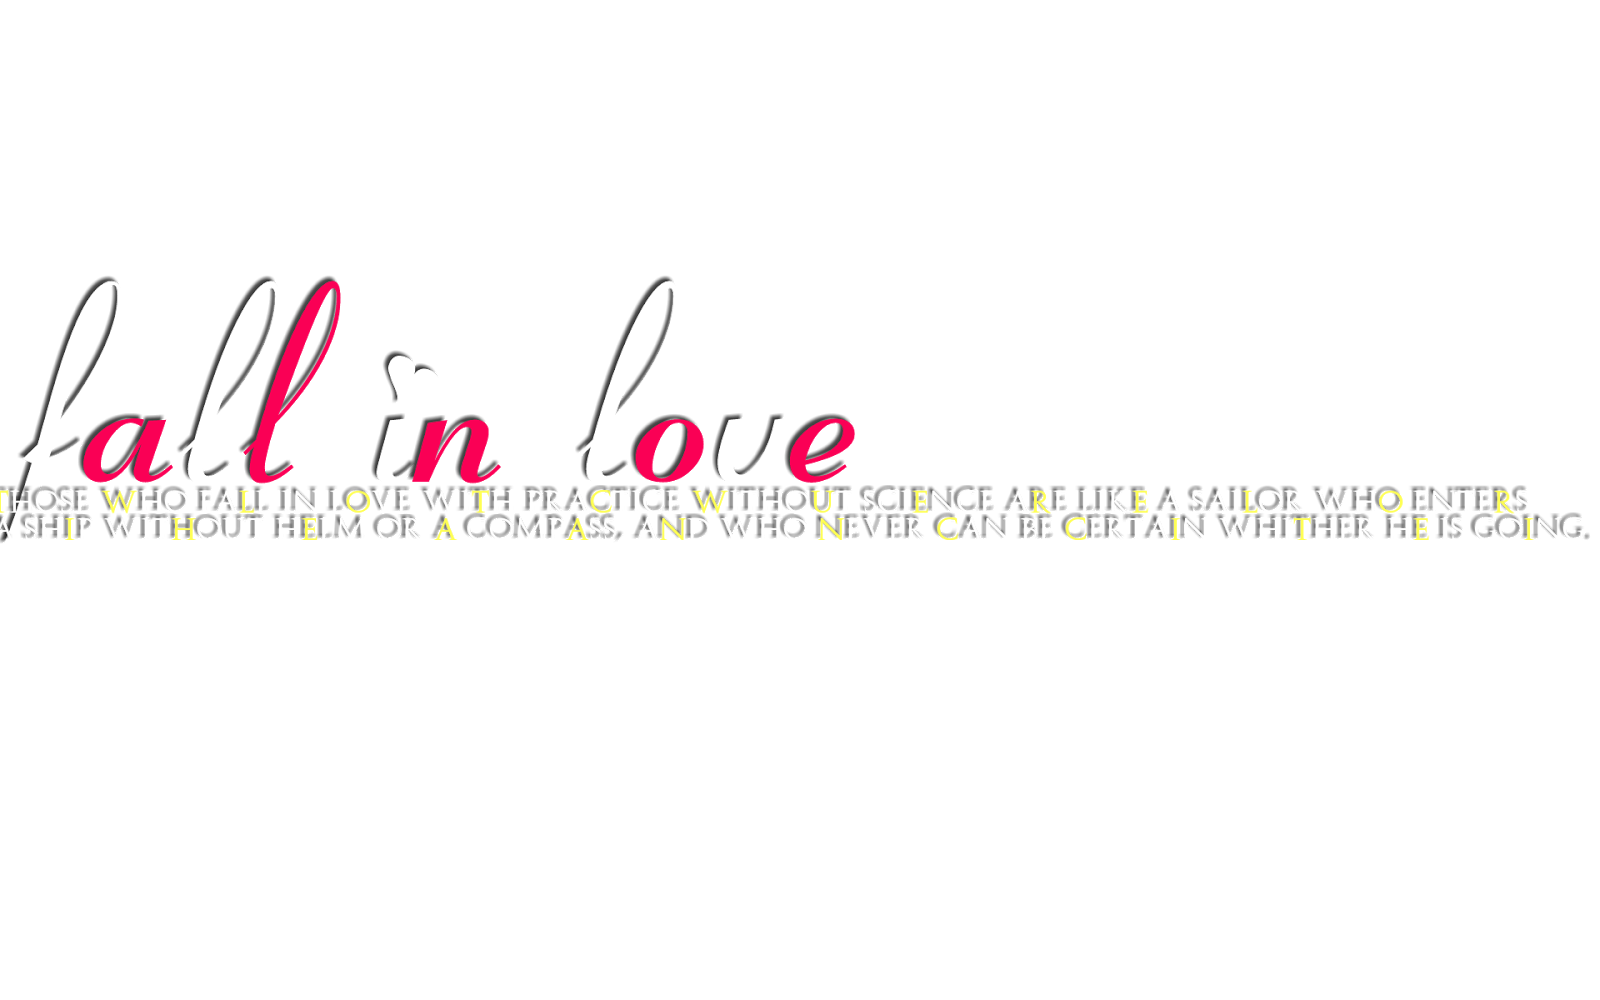 Love Text HD PNG - 93567